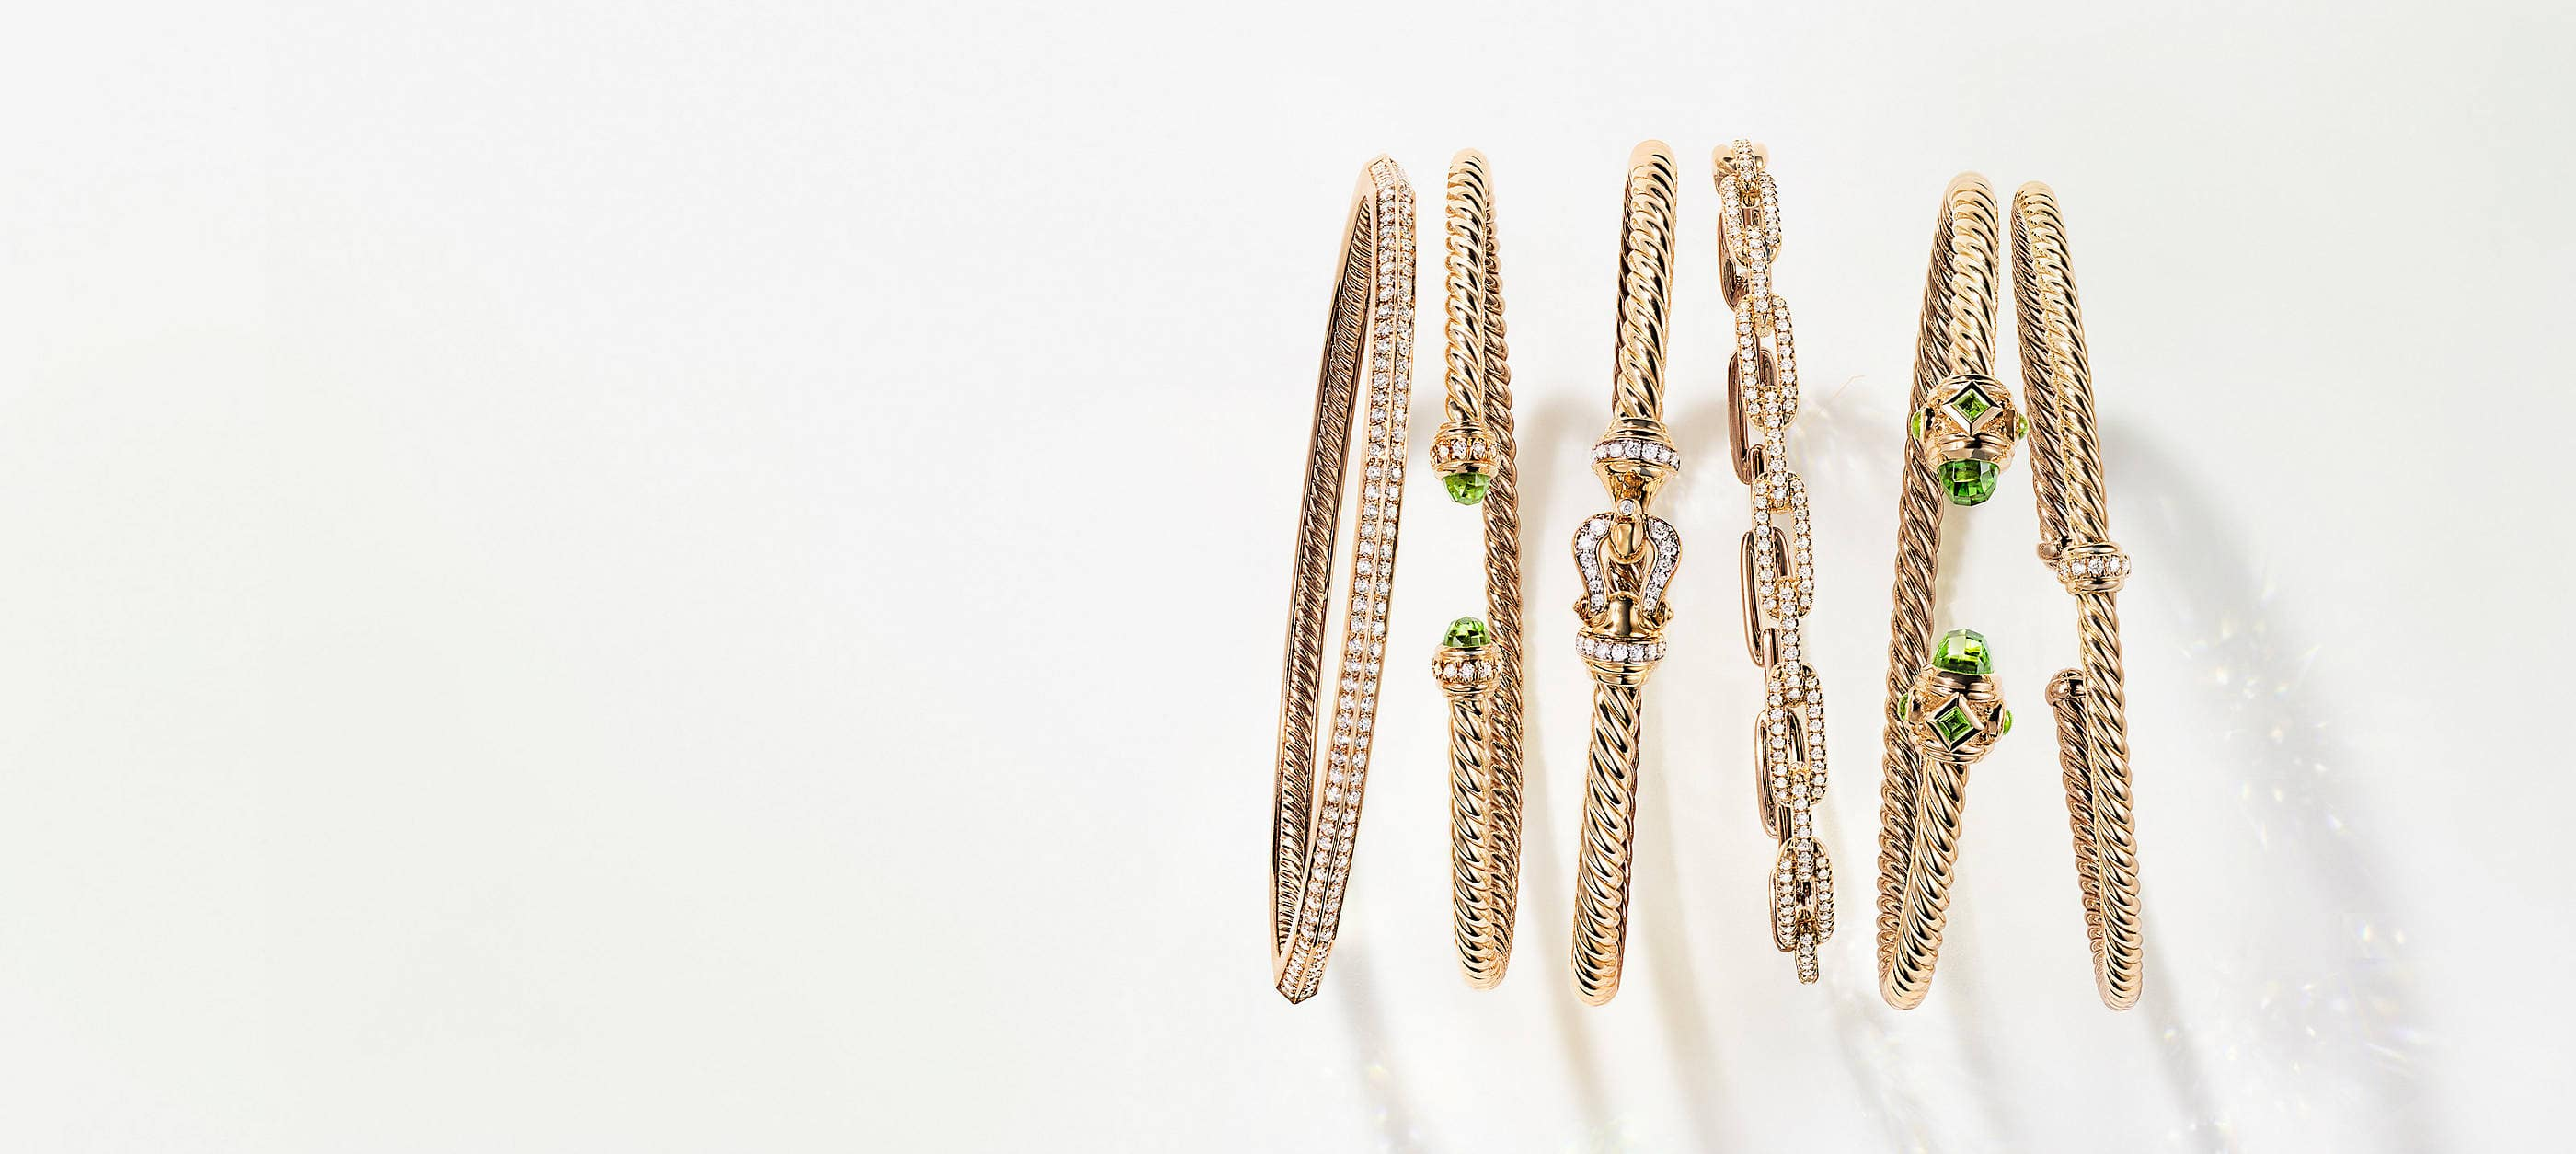 A horizontal row of six David Yurman Cable, chain and faceted bracelets standing on a white background with soft shadows. The women's jewelry is crafted from 18K yellow gold with or without pavé diamonds and peridot accents on the bracelet ends.